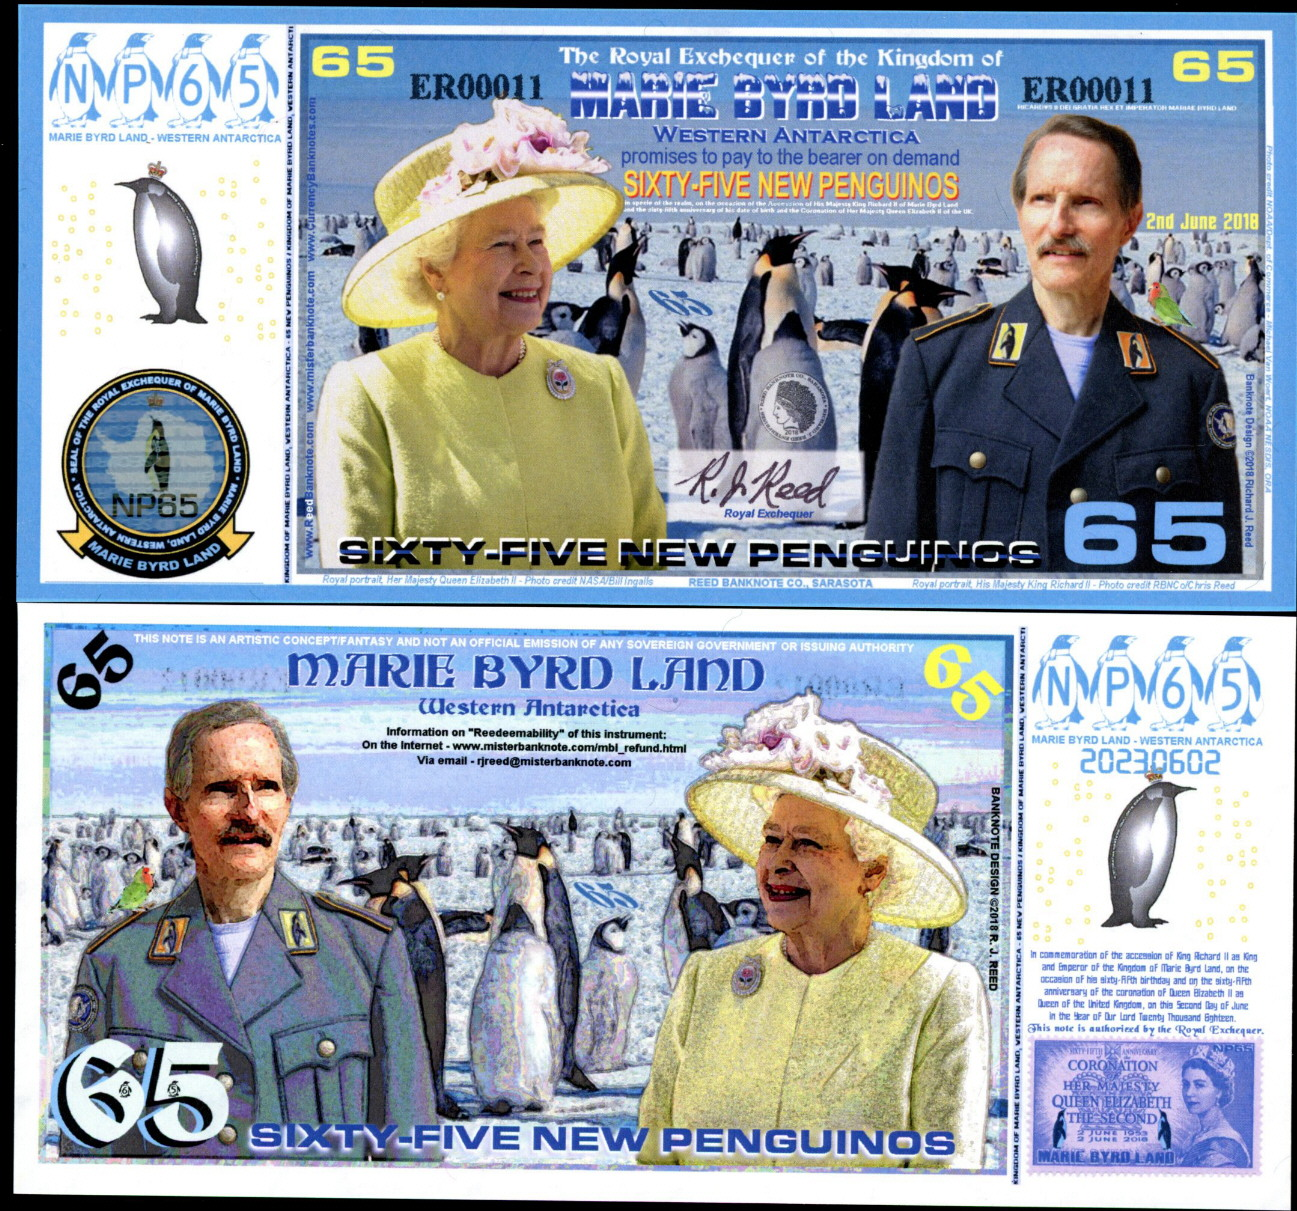 65 New Penguinos  (90) UNC Banknote